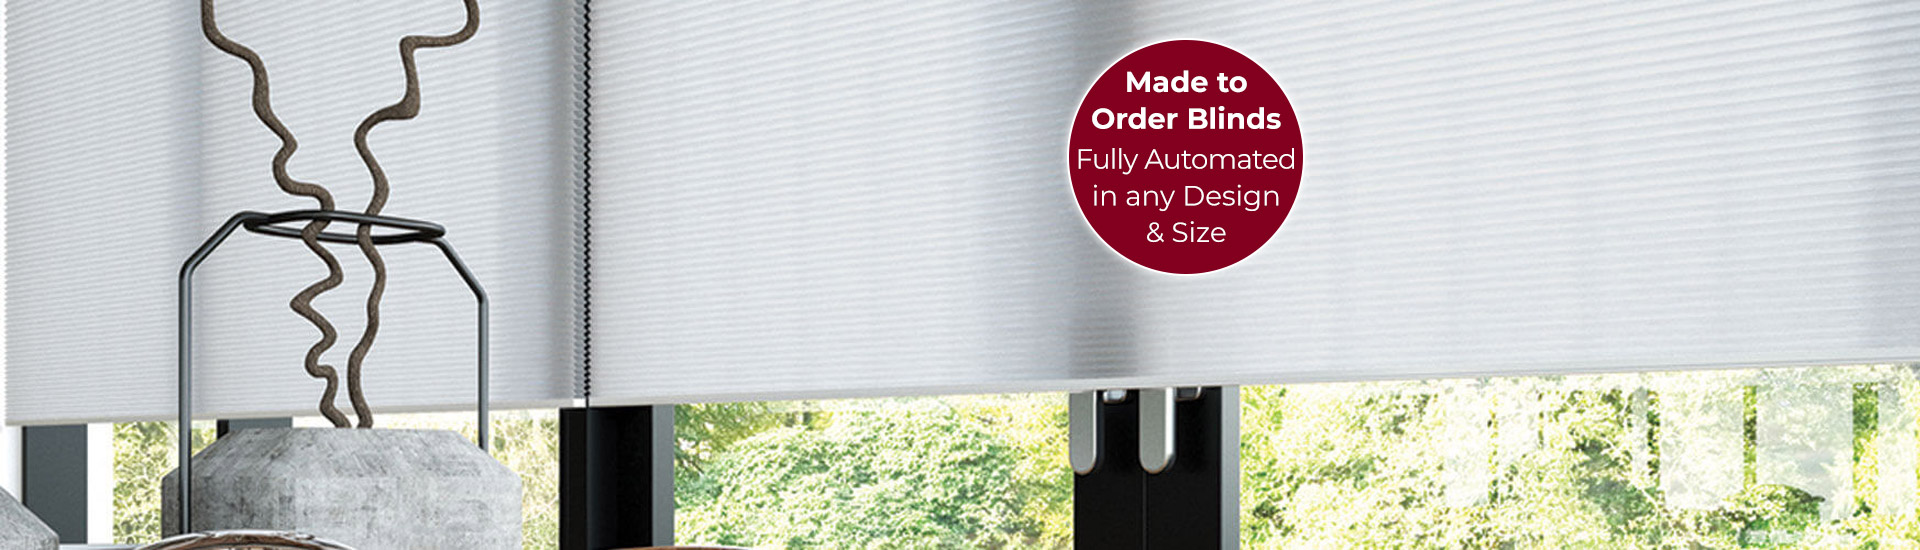 Electric Duette Blinds with Sticker